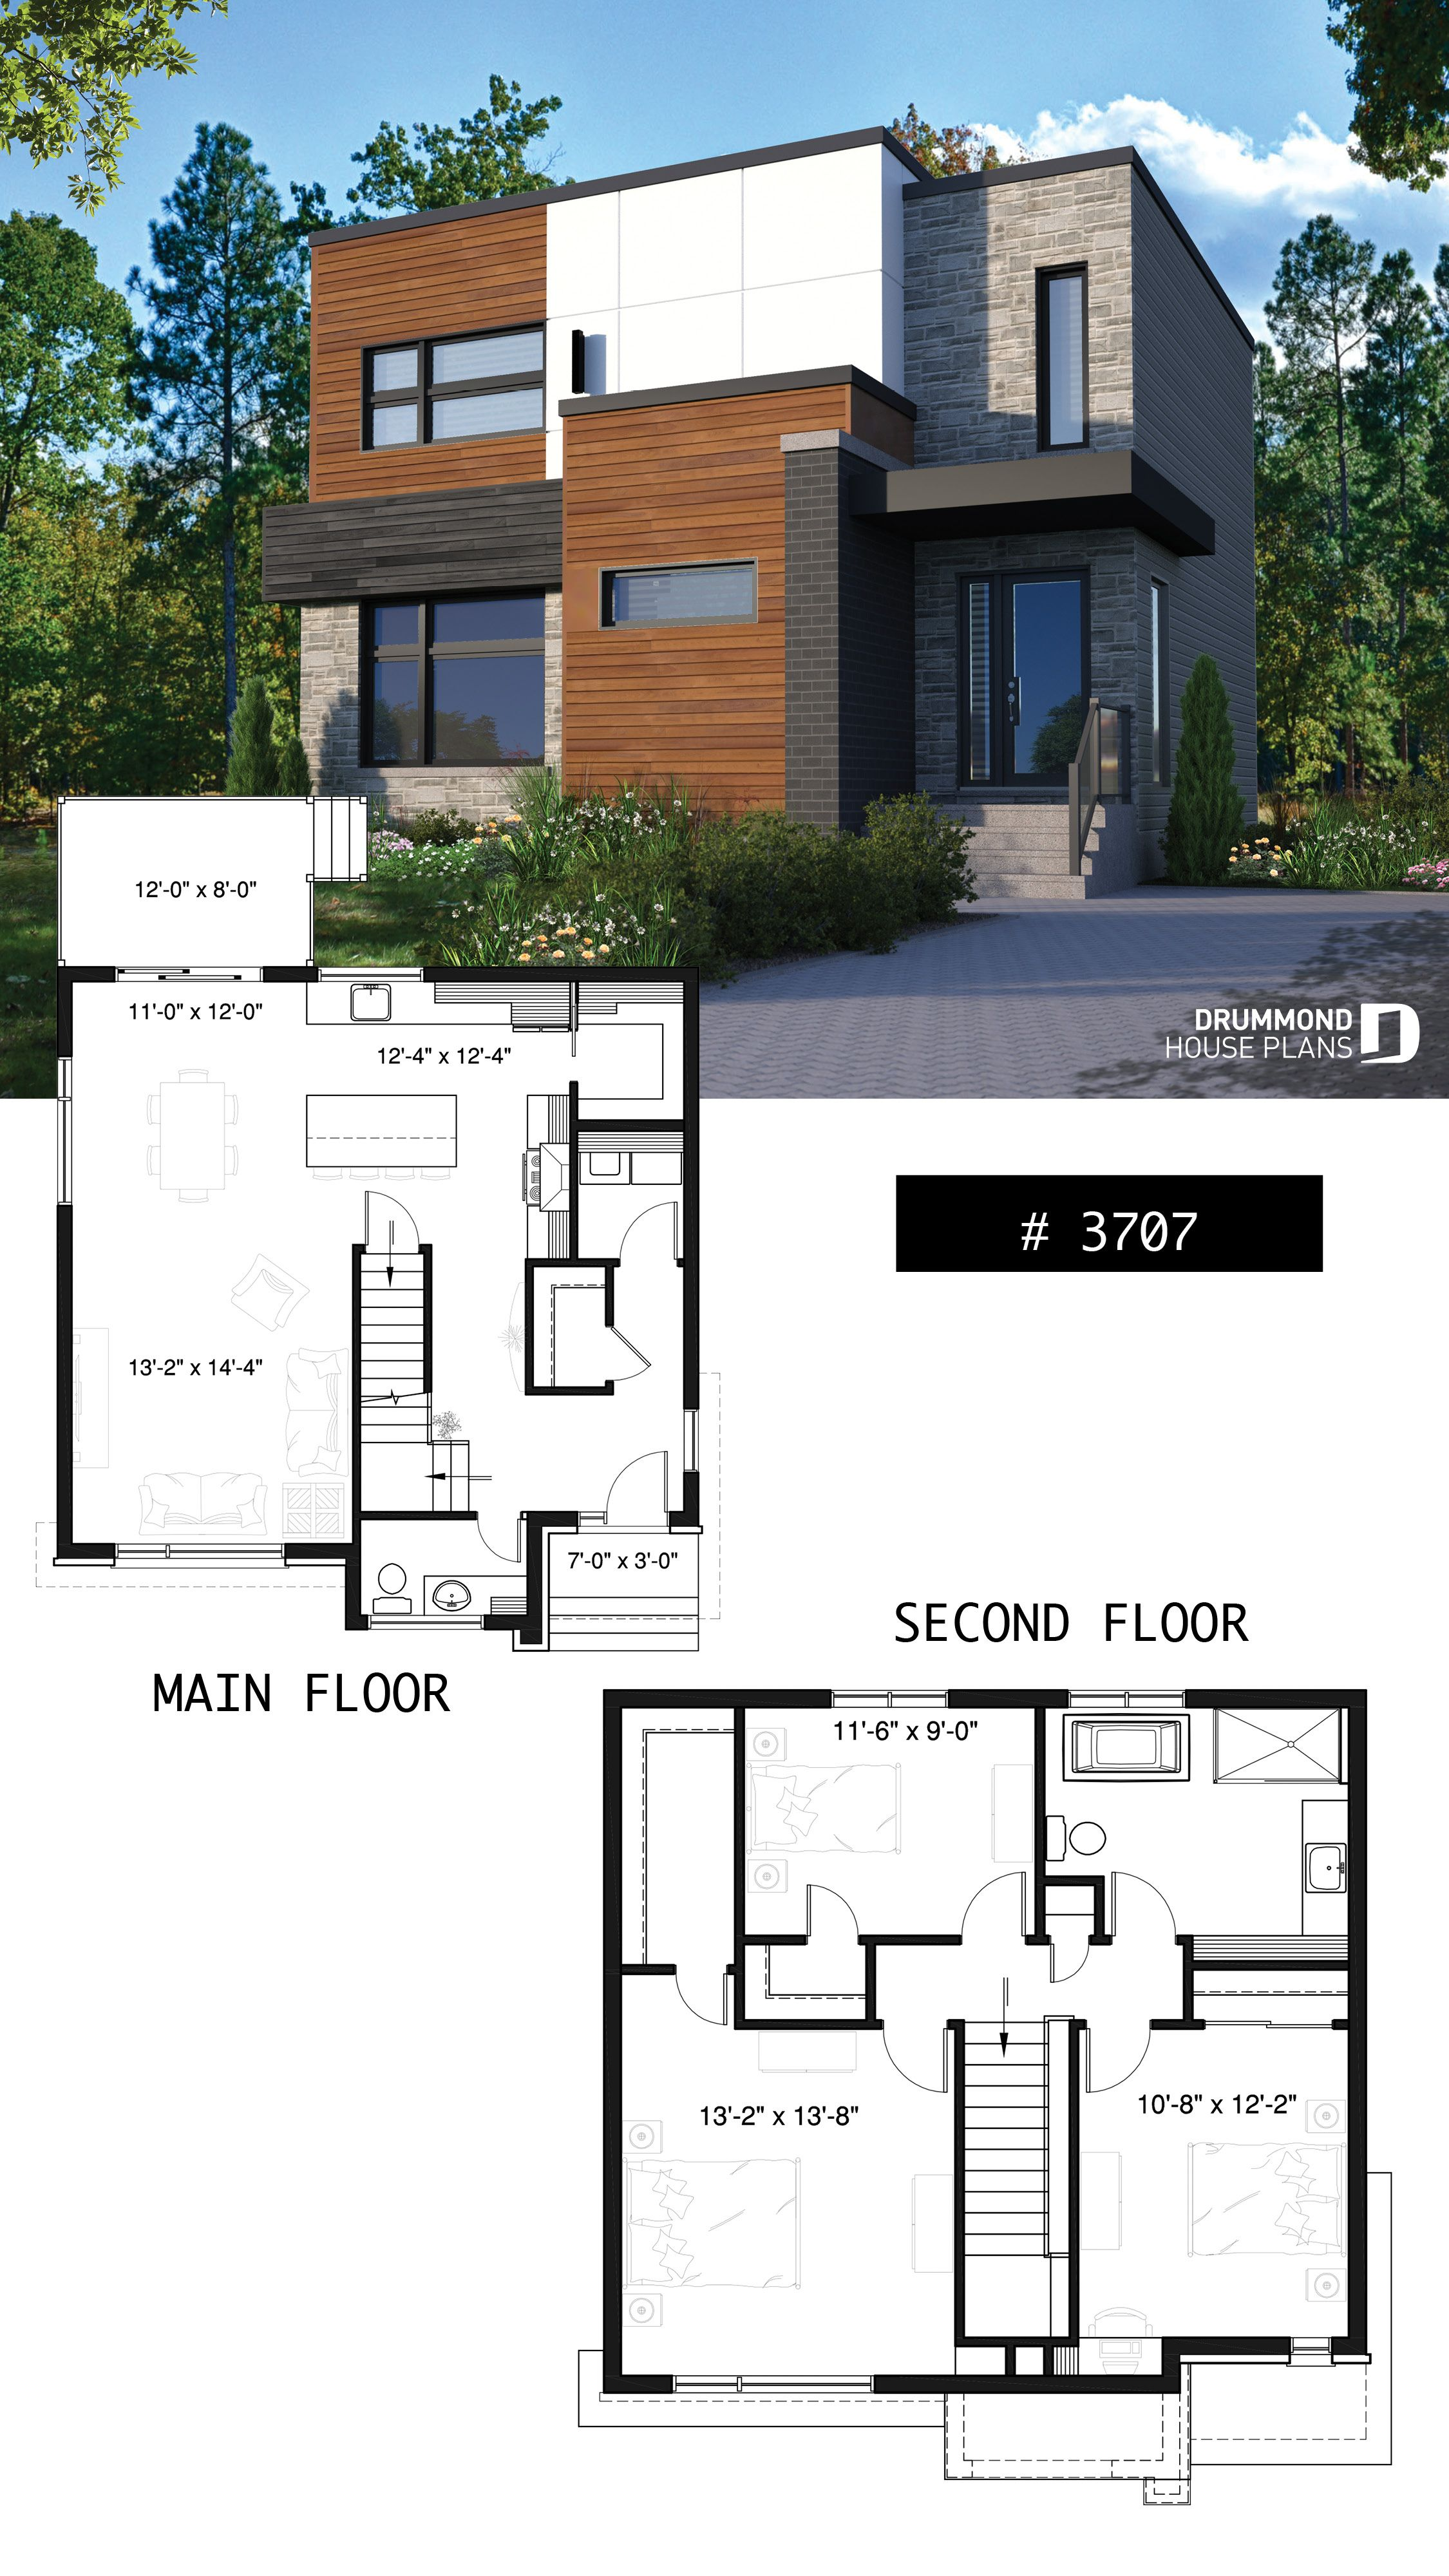 house plan Lavoisier No. 3707 (With images)   Modern house ...